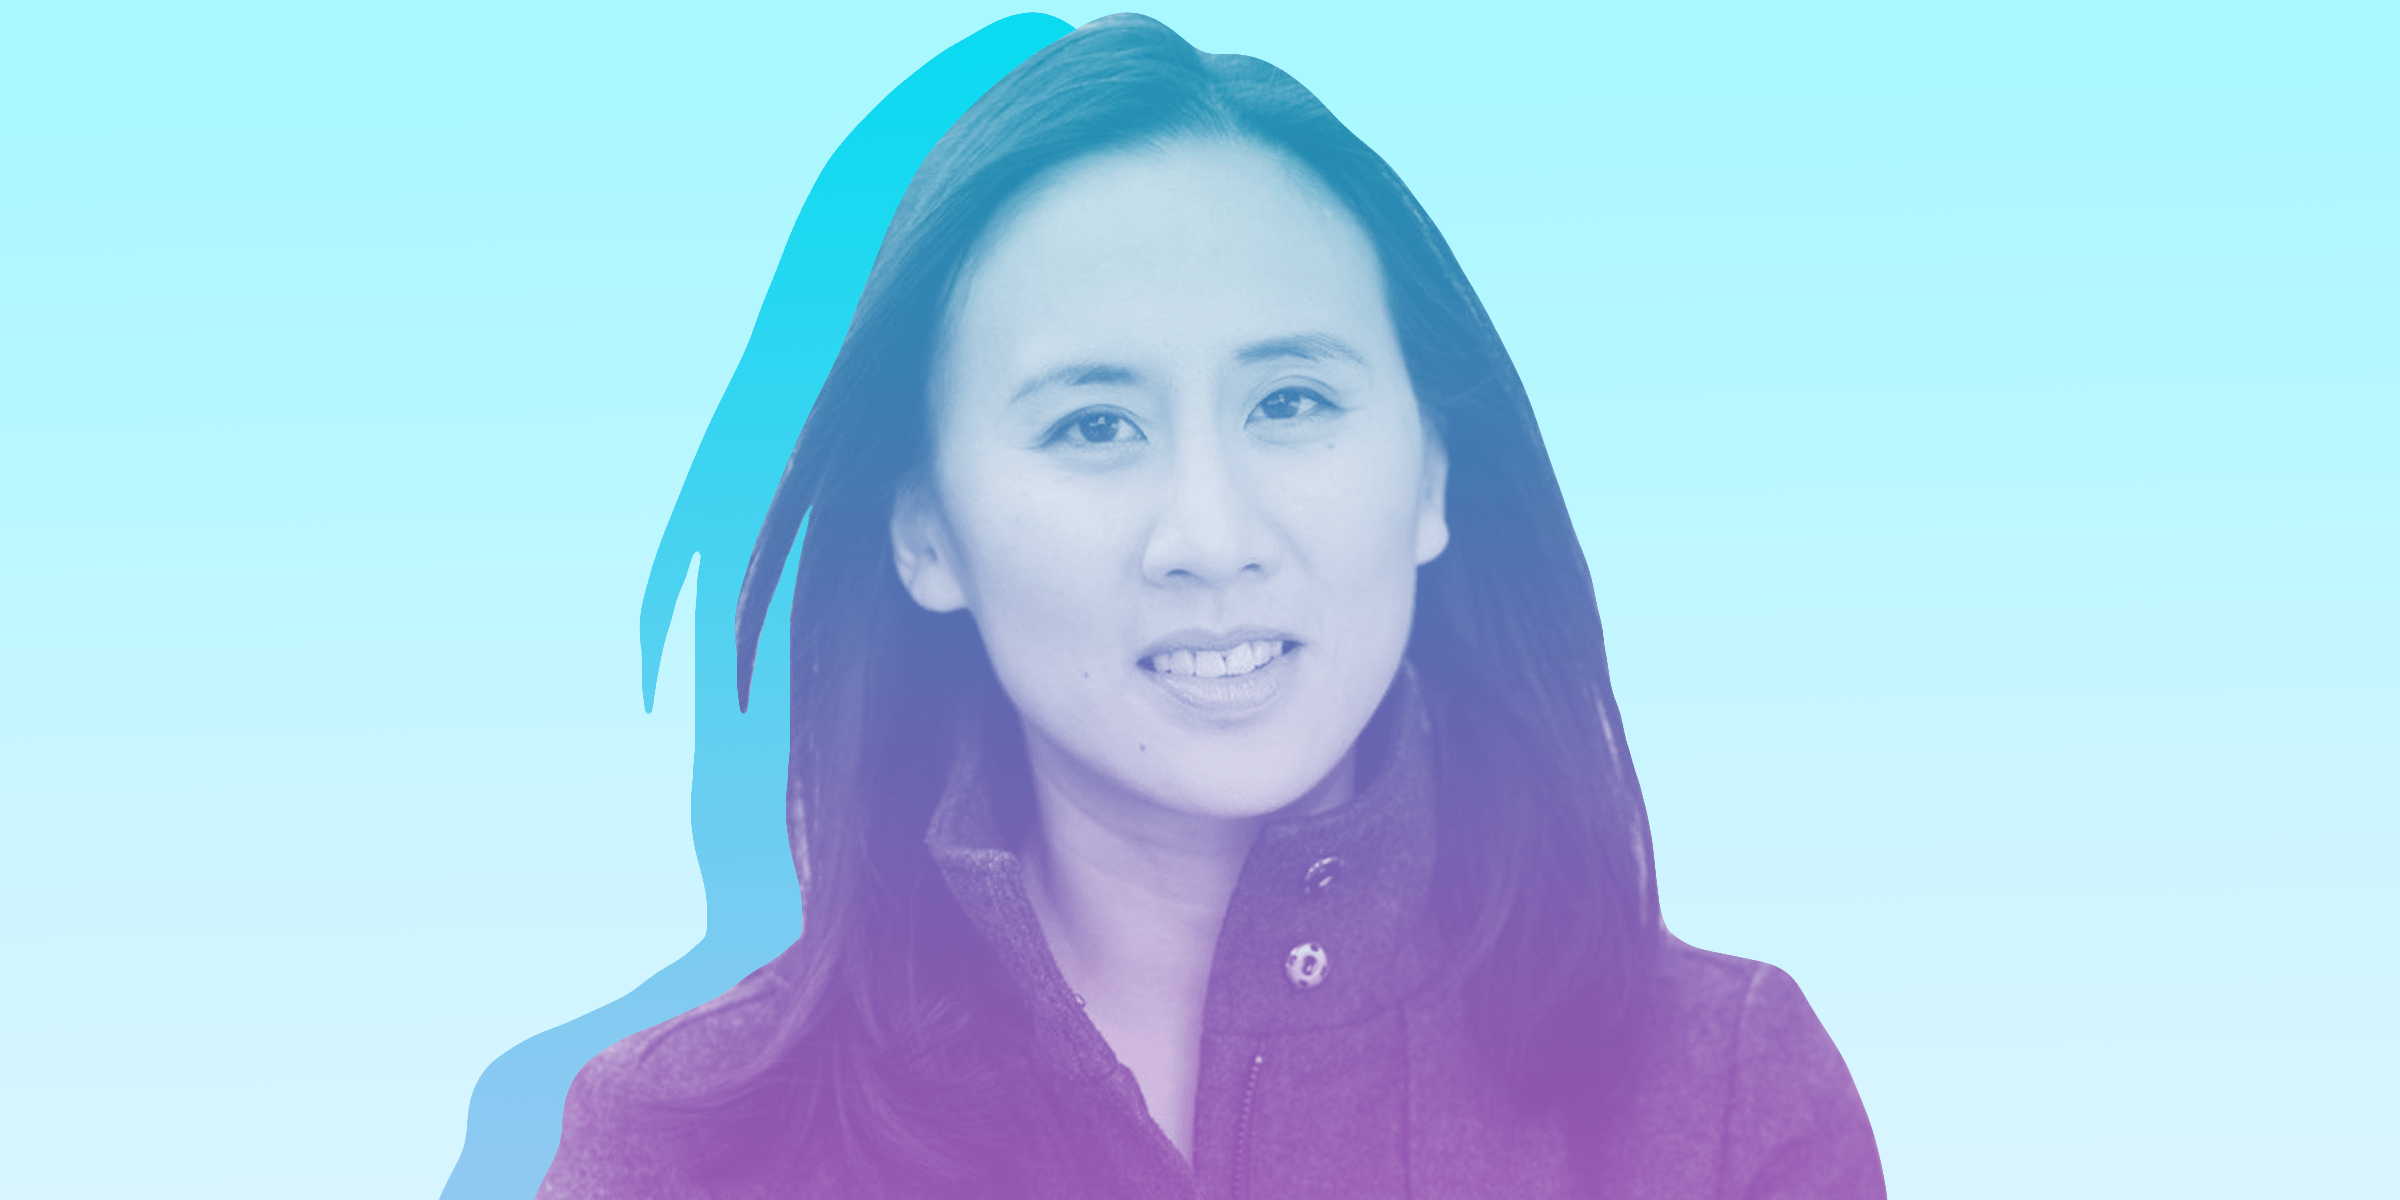 Catching Up With Celeste Ng